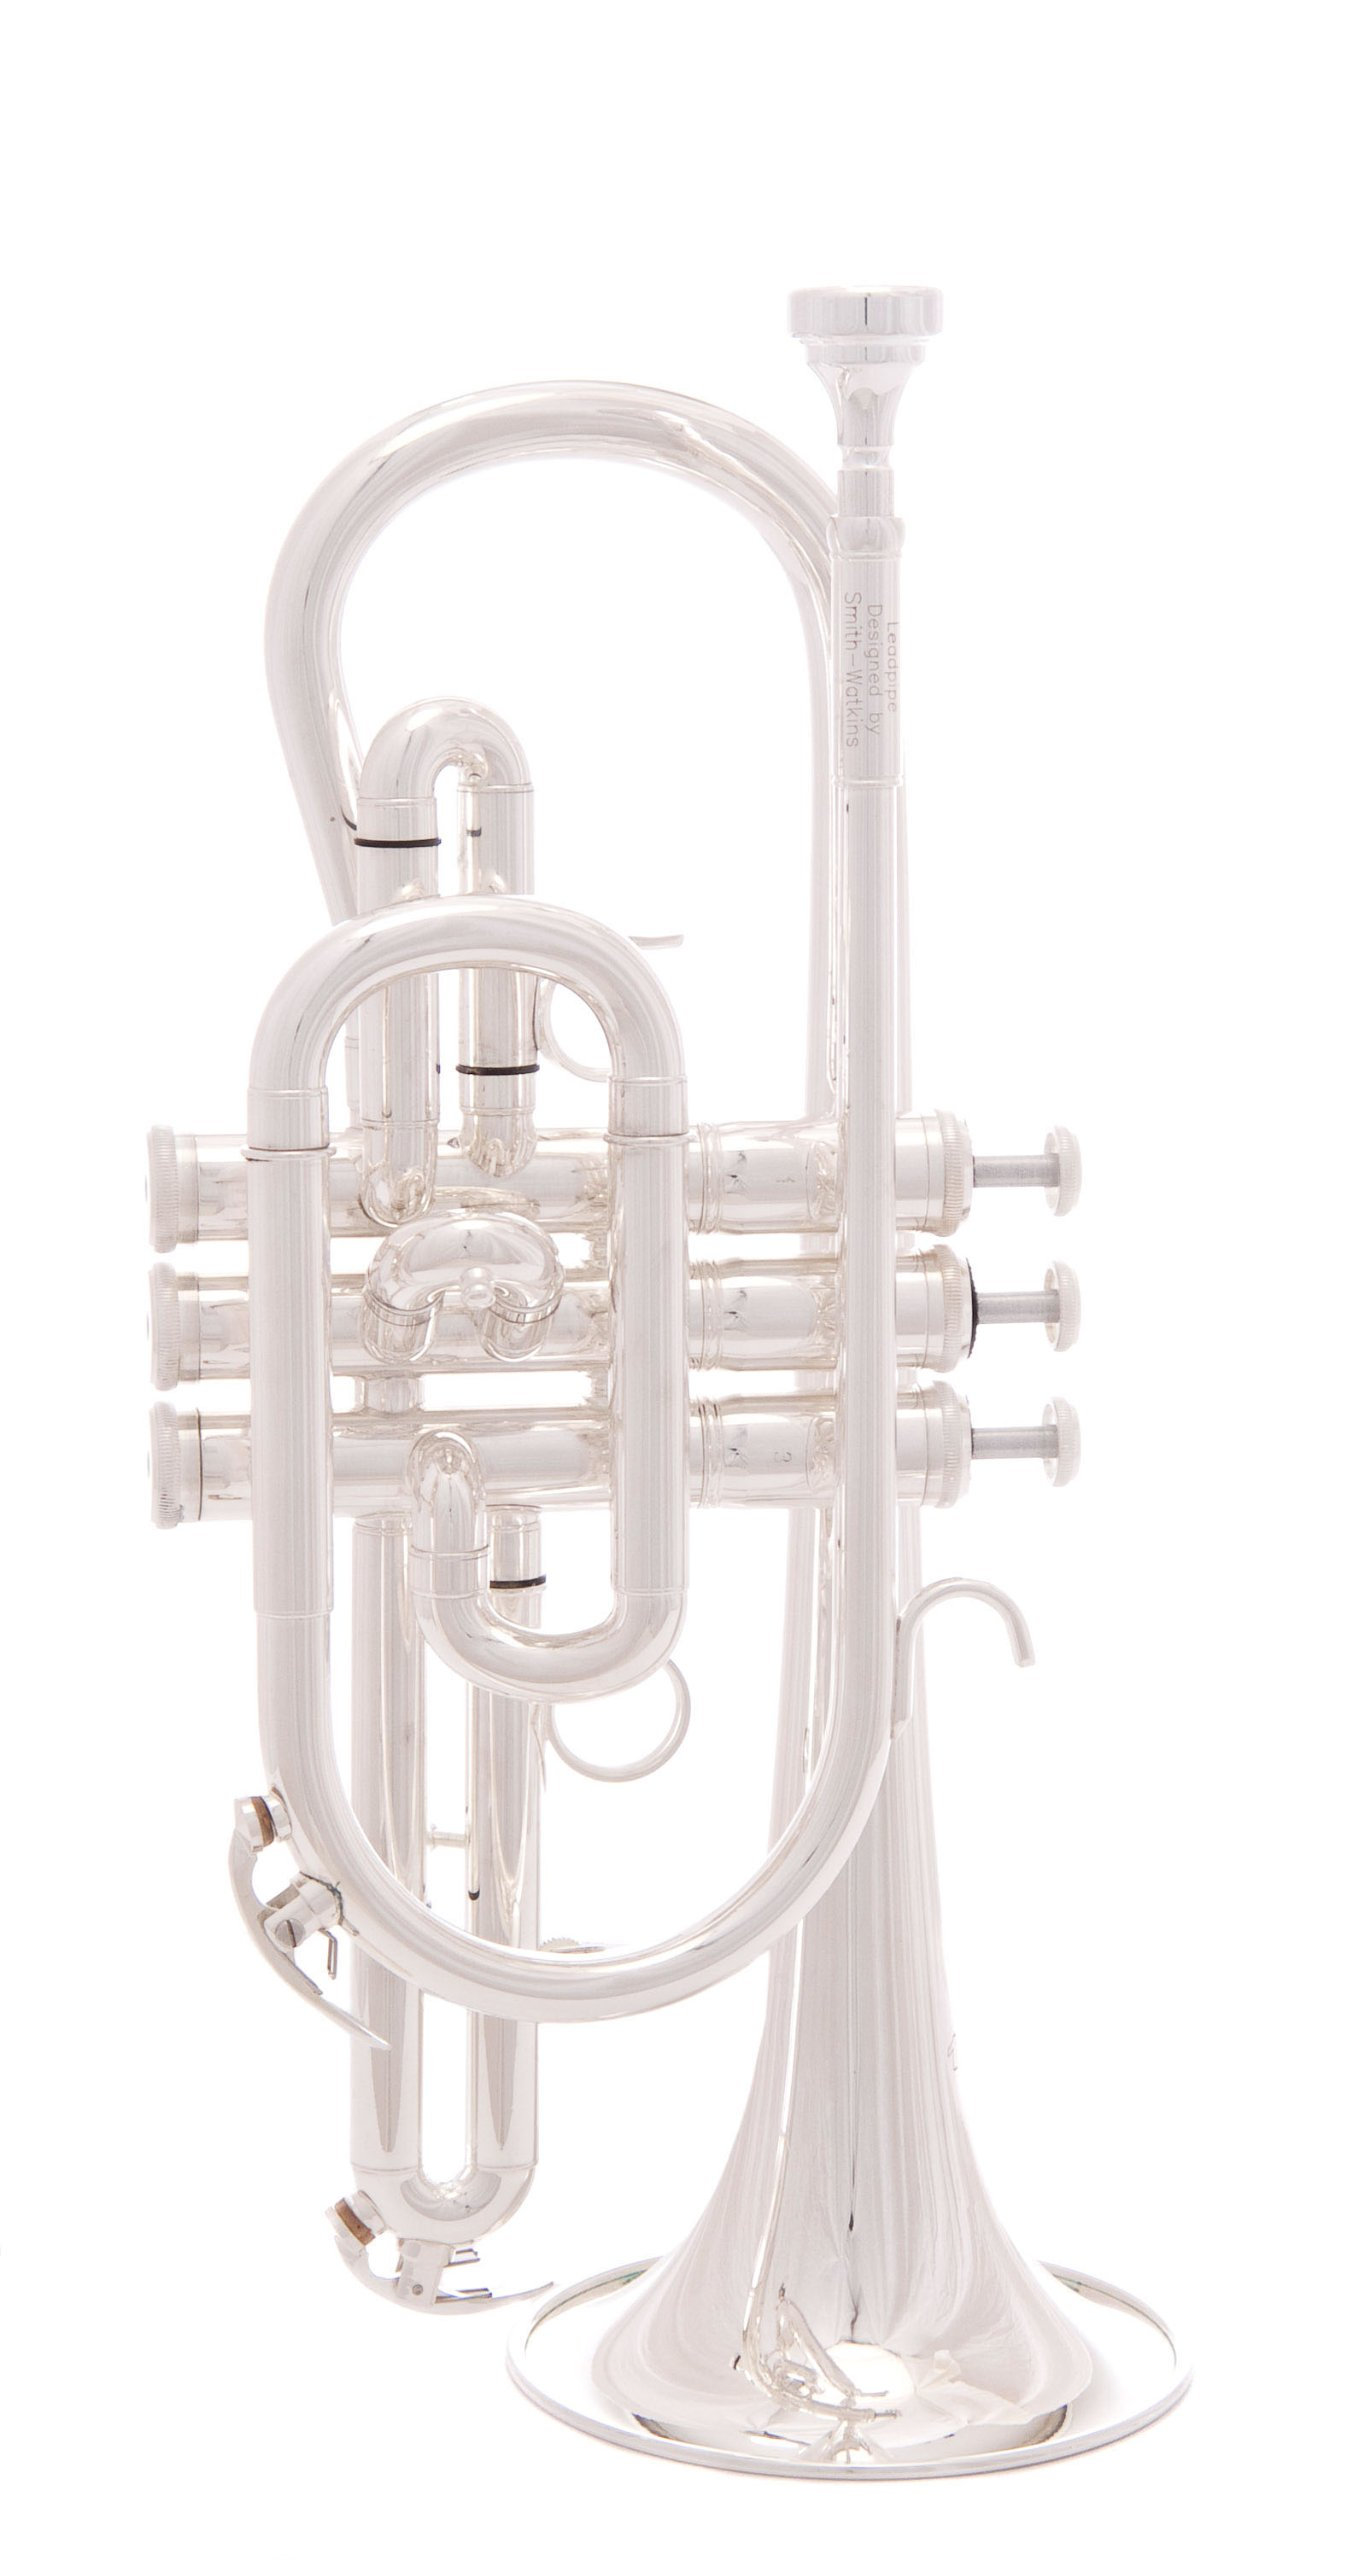 John Packer - Smith Watkins Silver Plated Cornet